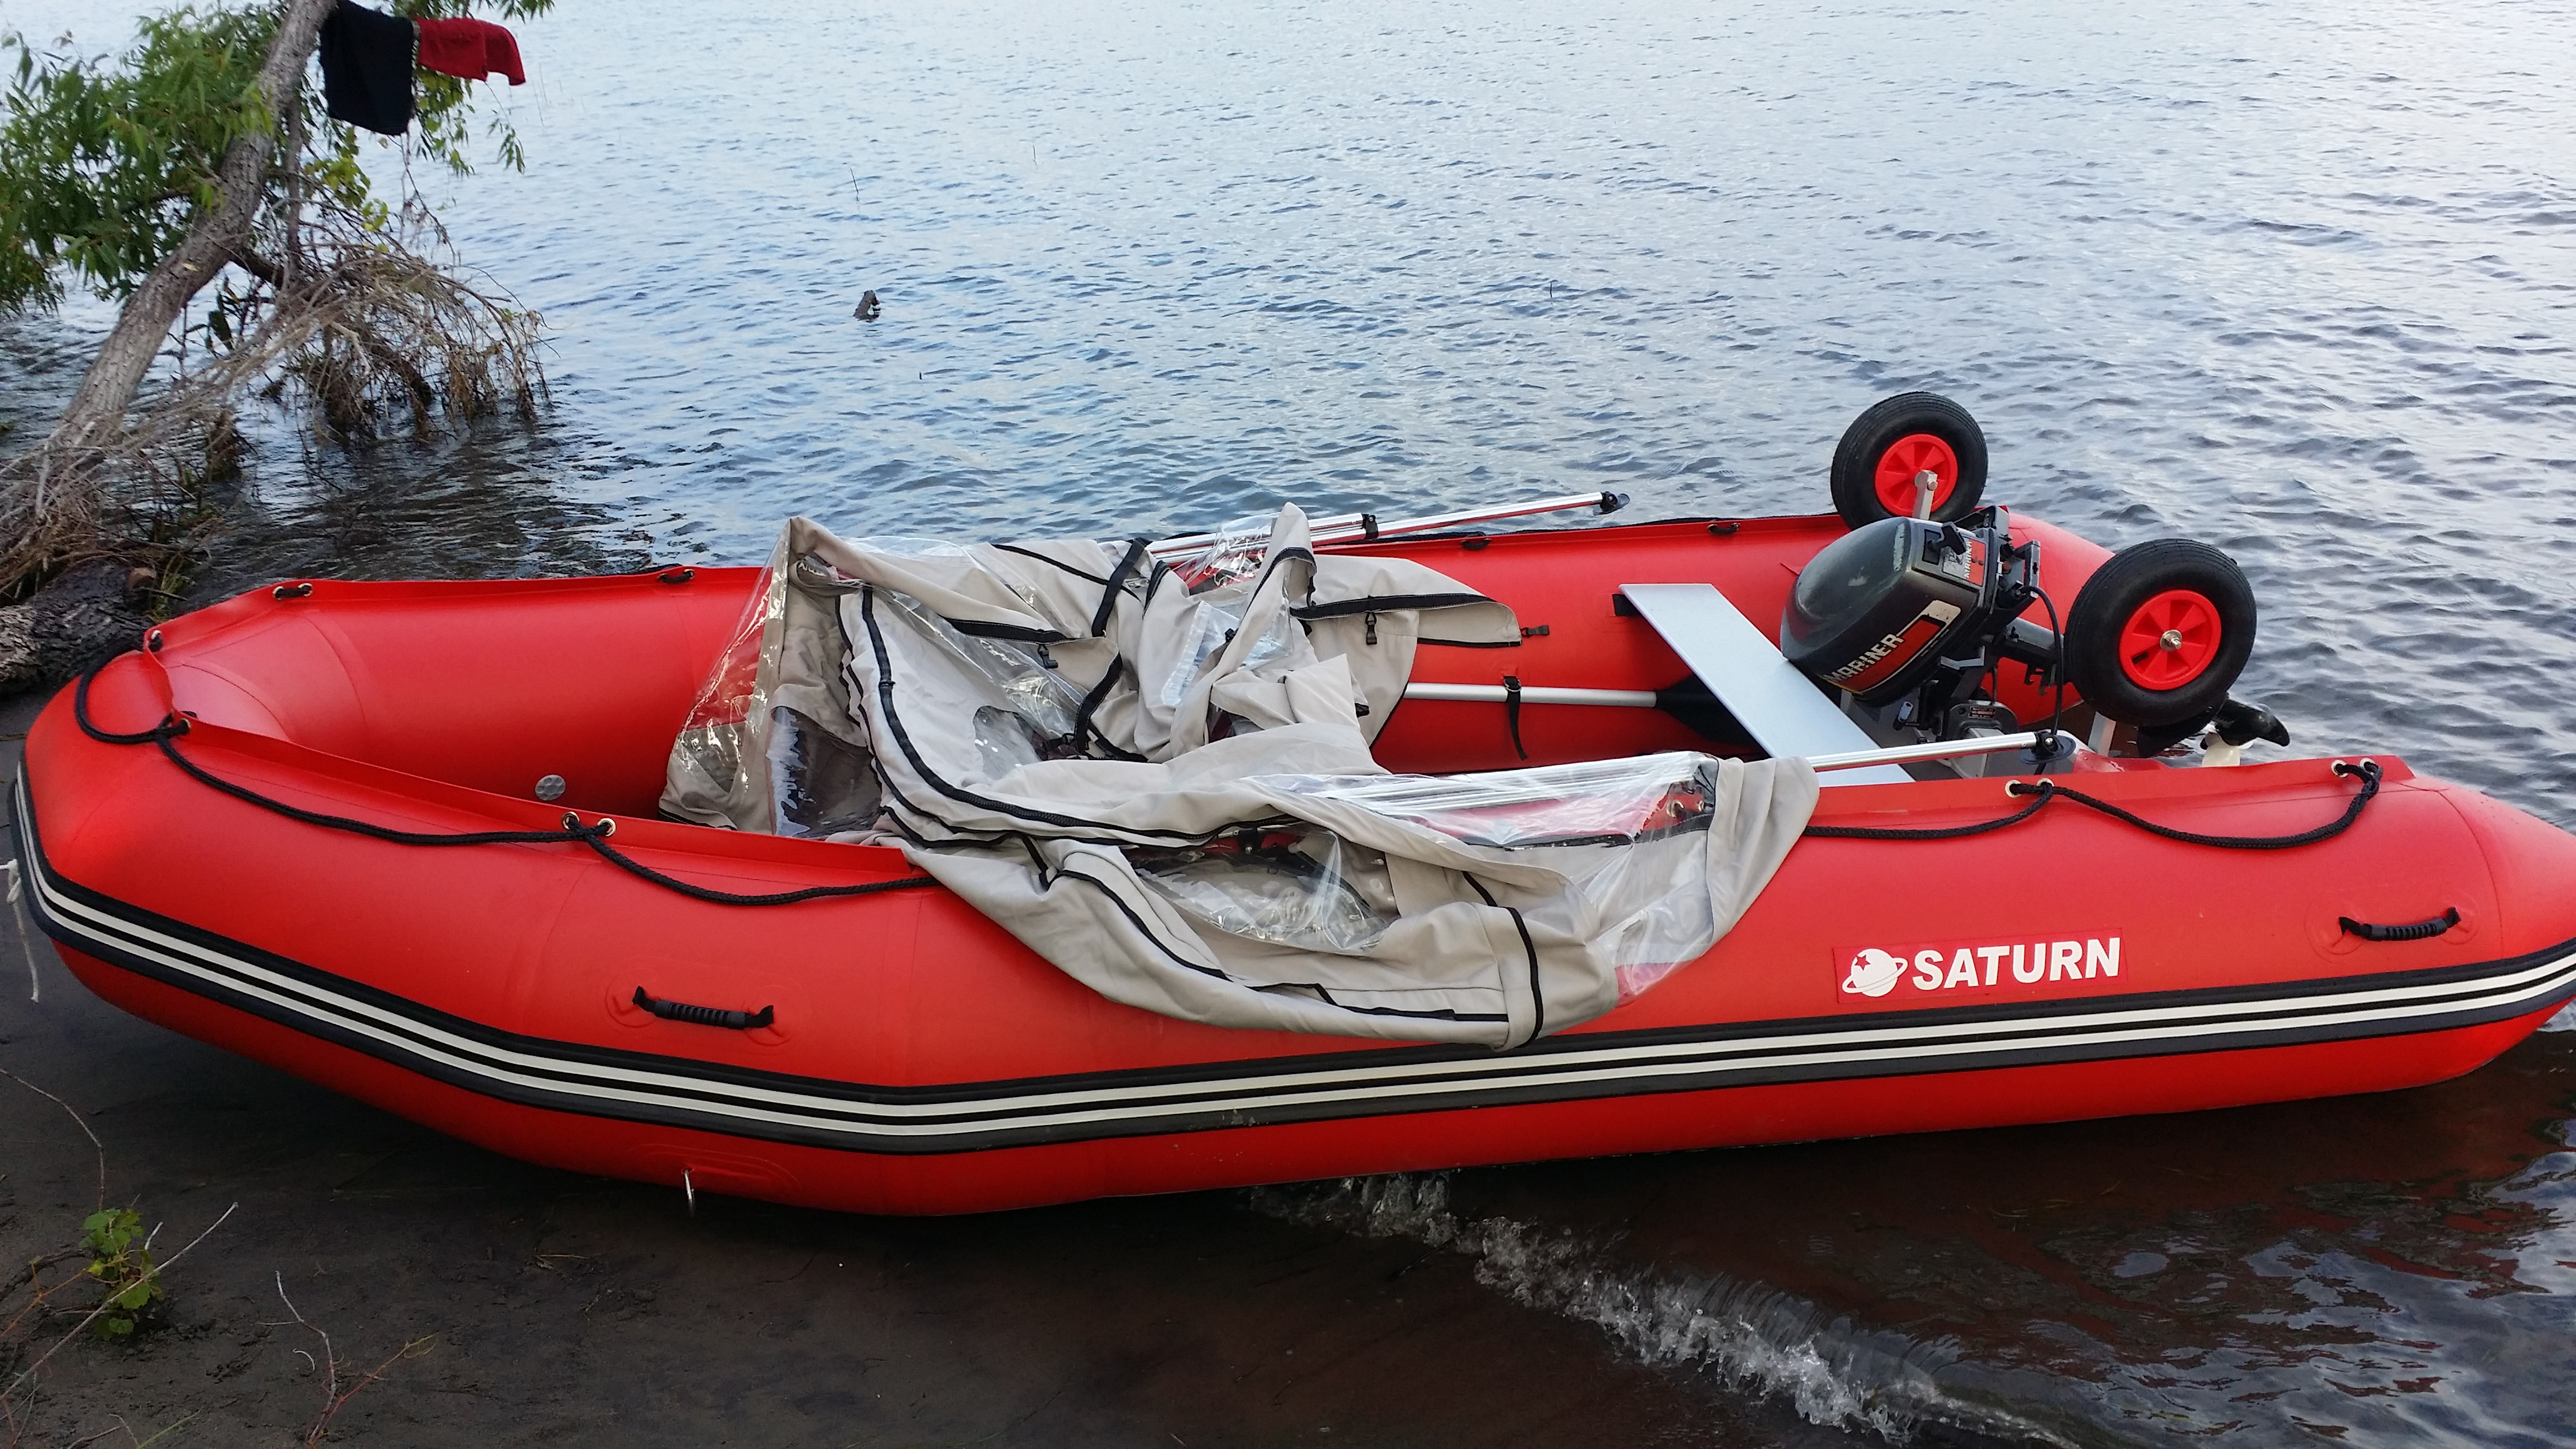 Saturn-XHD487-inflatable-boat-03